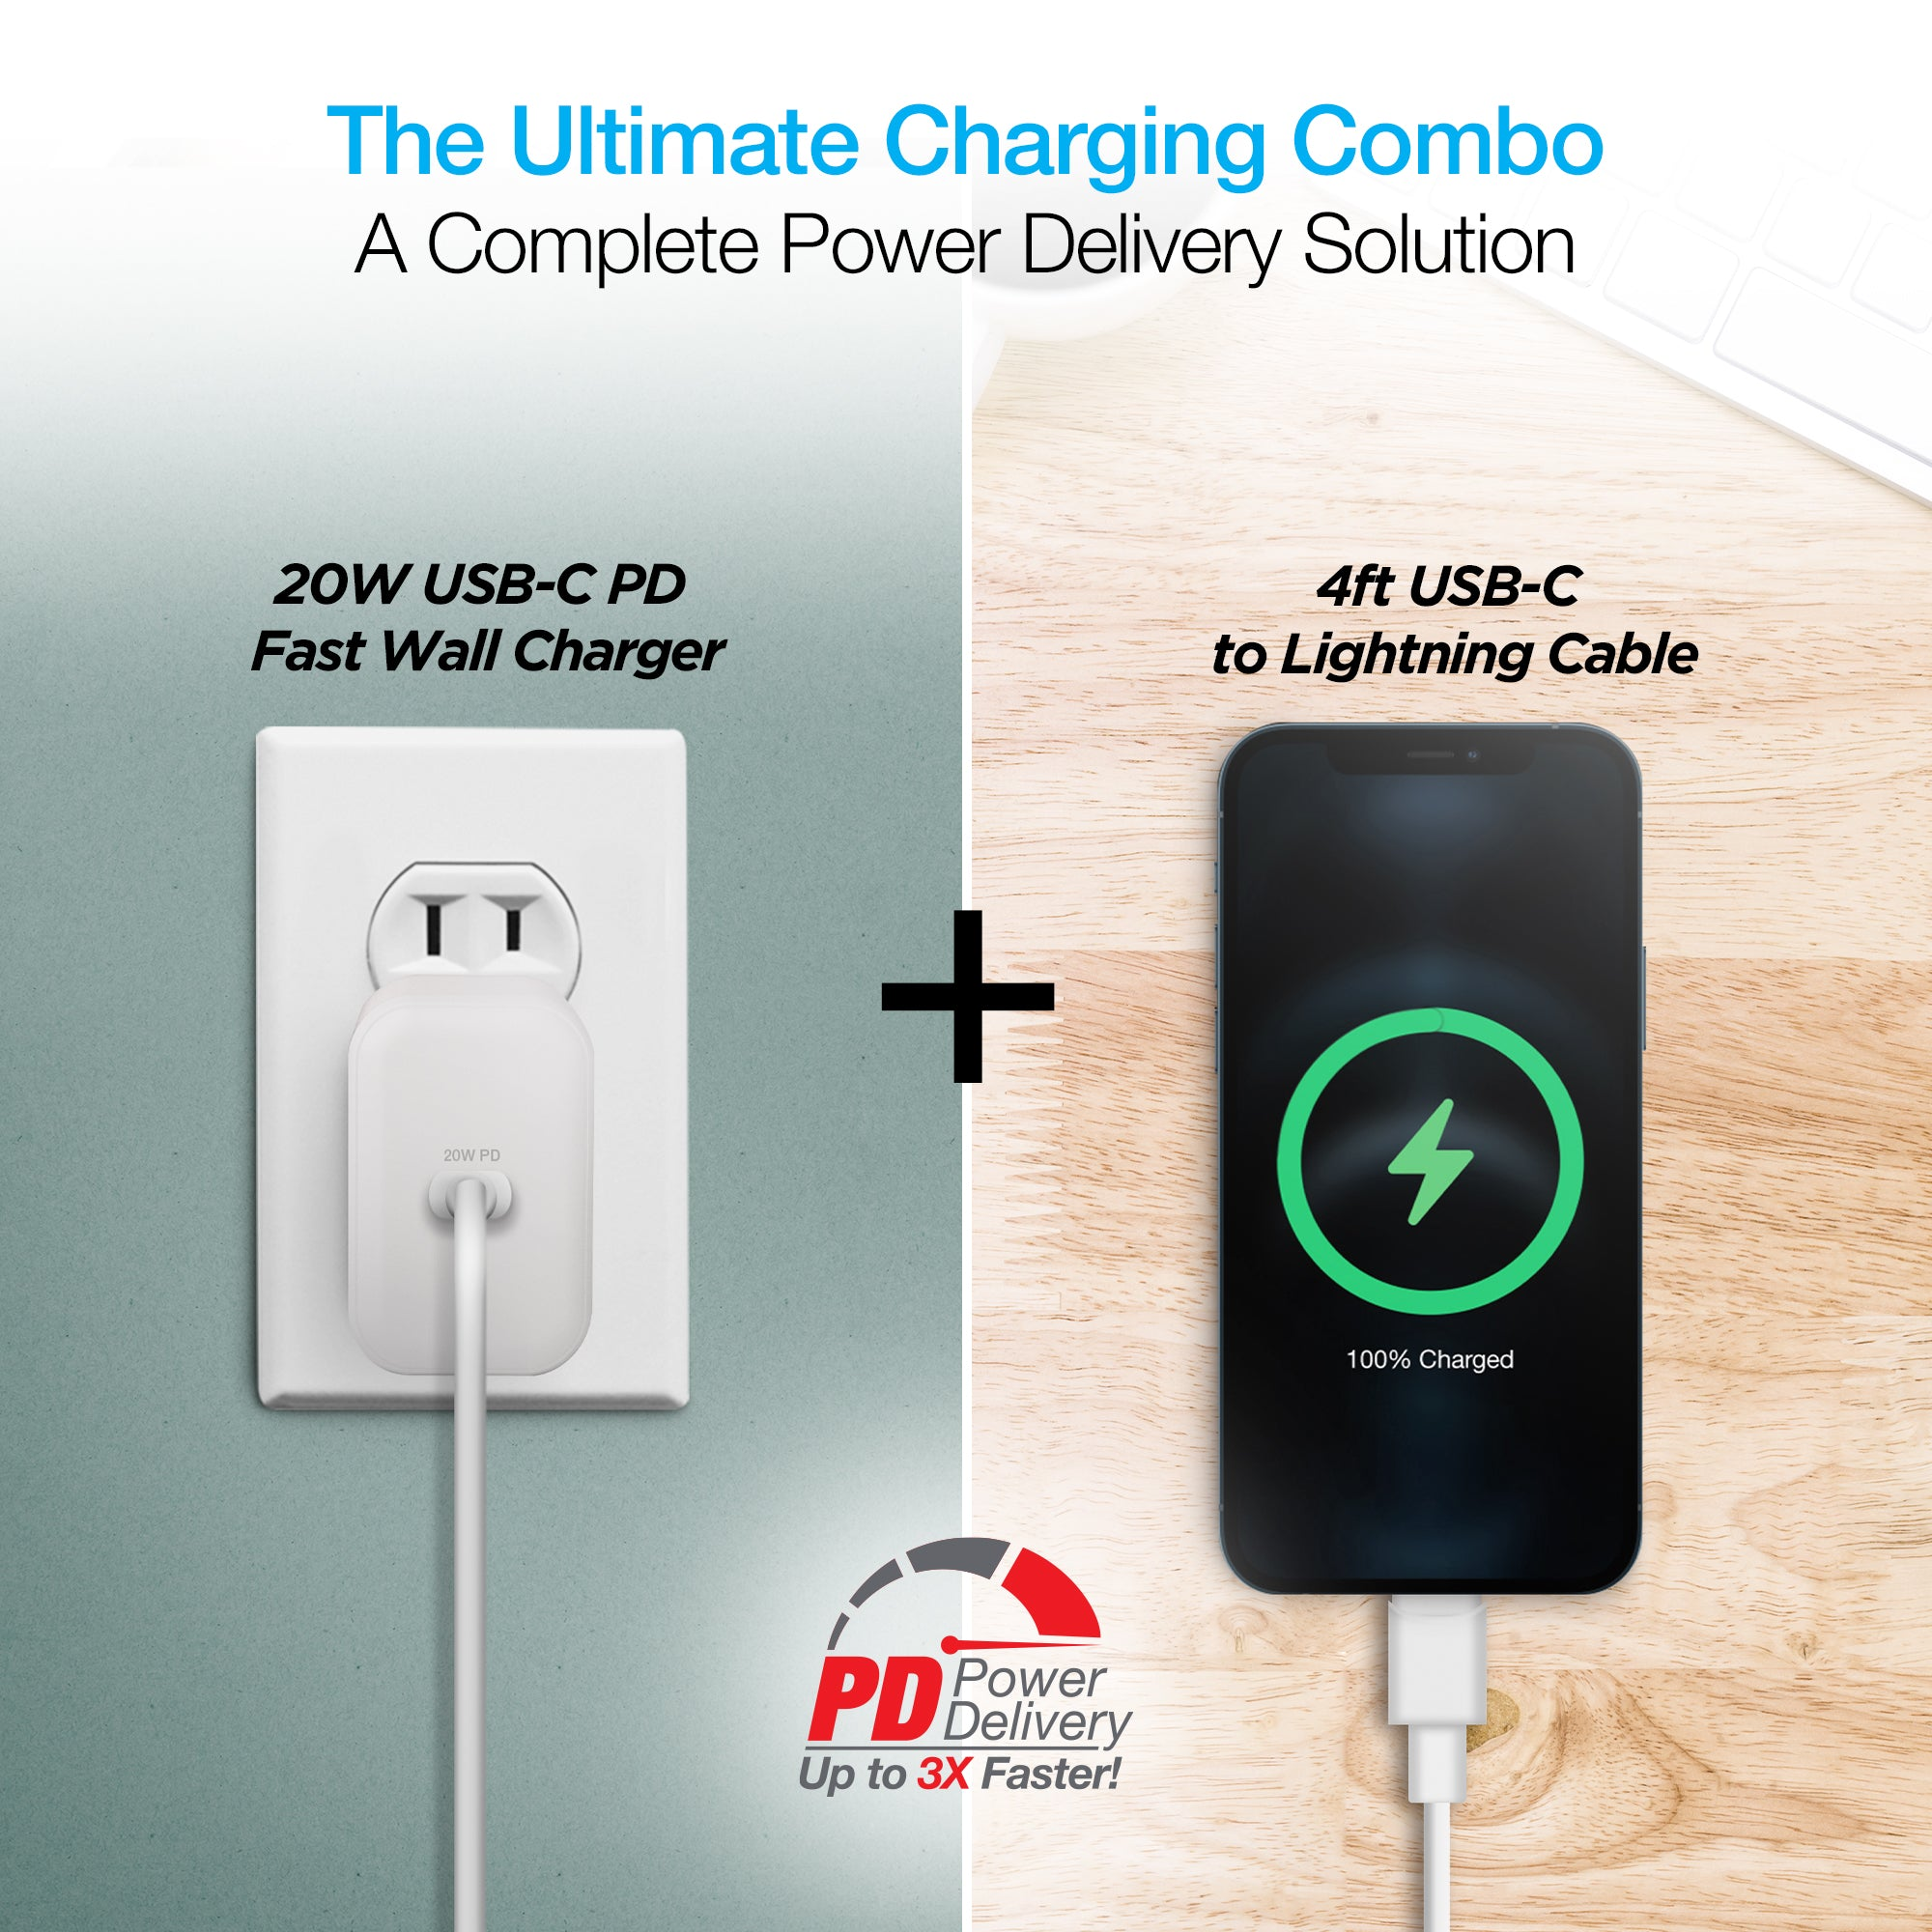 20W USB-C PD Fast Wall Charger with USB-C to Lightning Cable